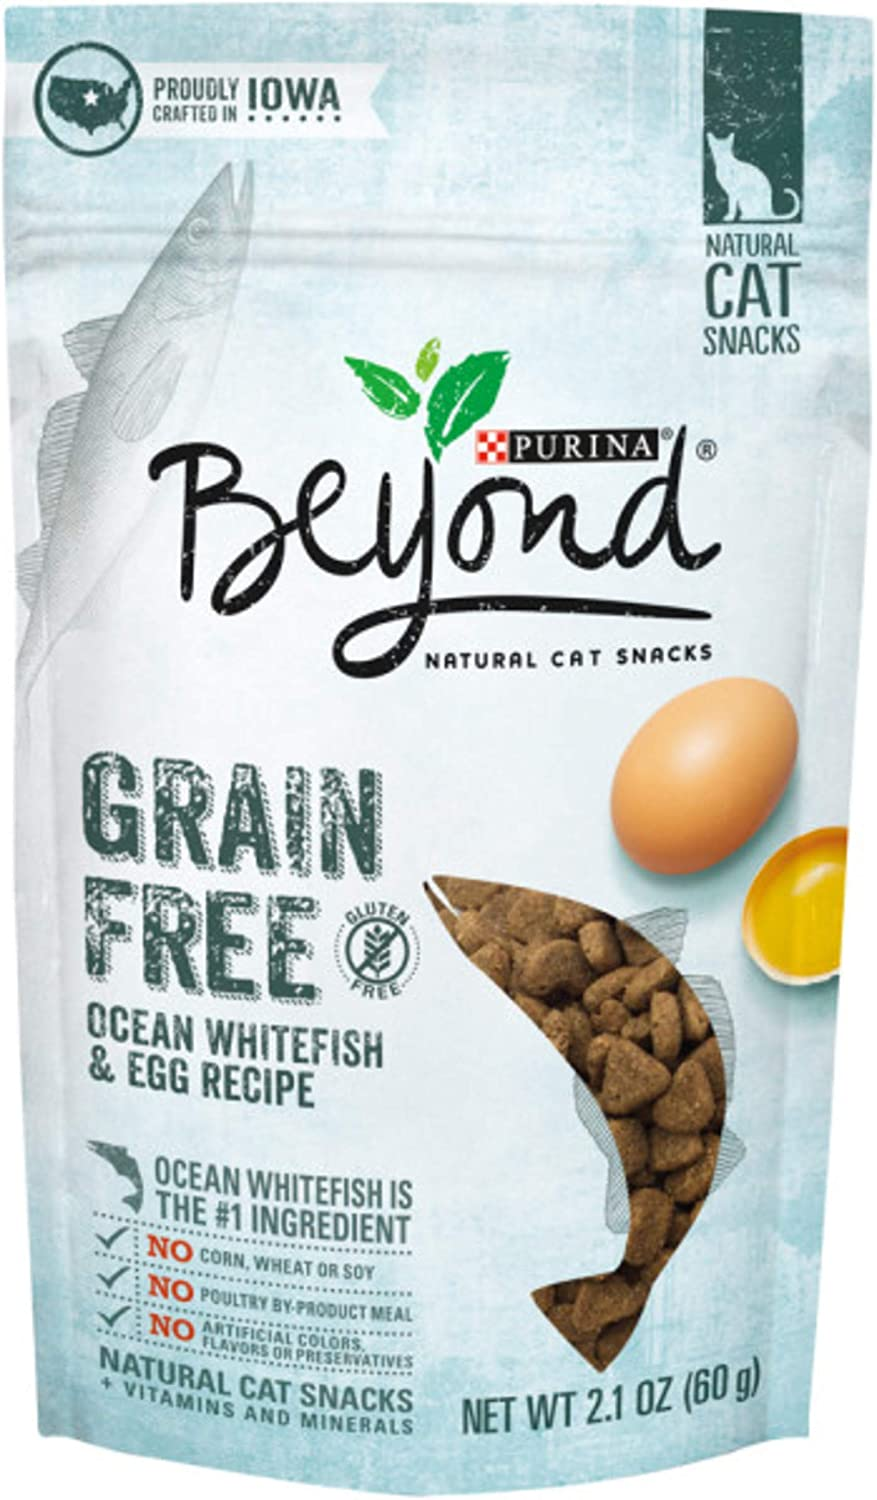 10-Pack 2.1oz Purina Beyond Grain Free Cat Snacks (Ocean Whitefish & Egg)